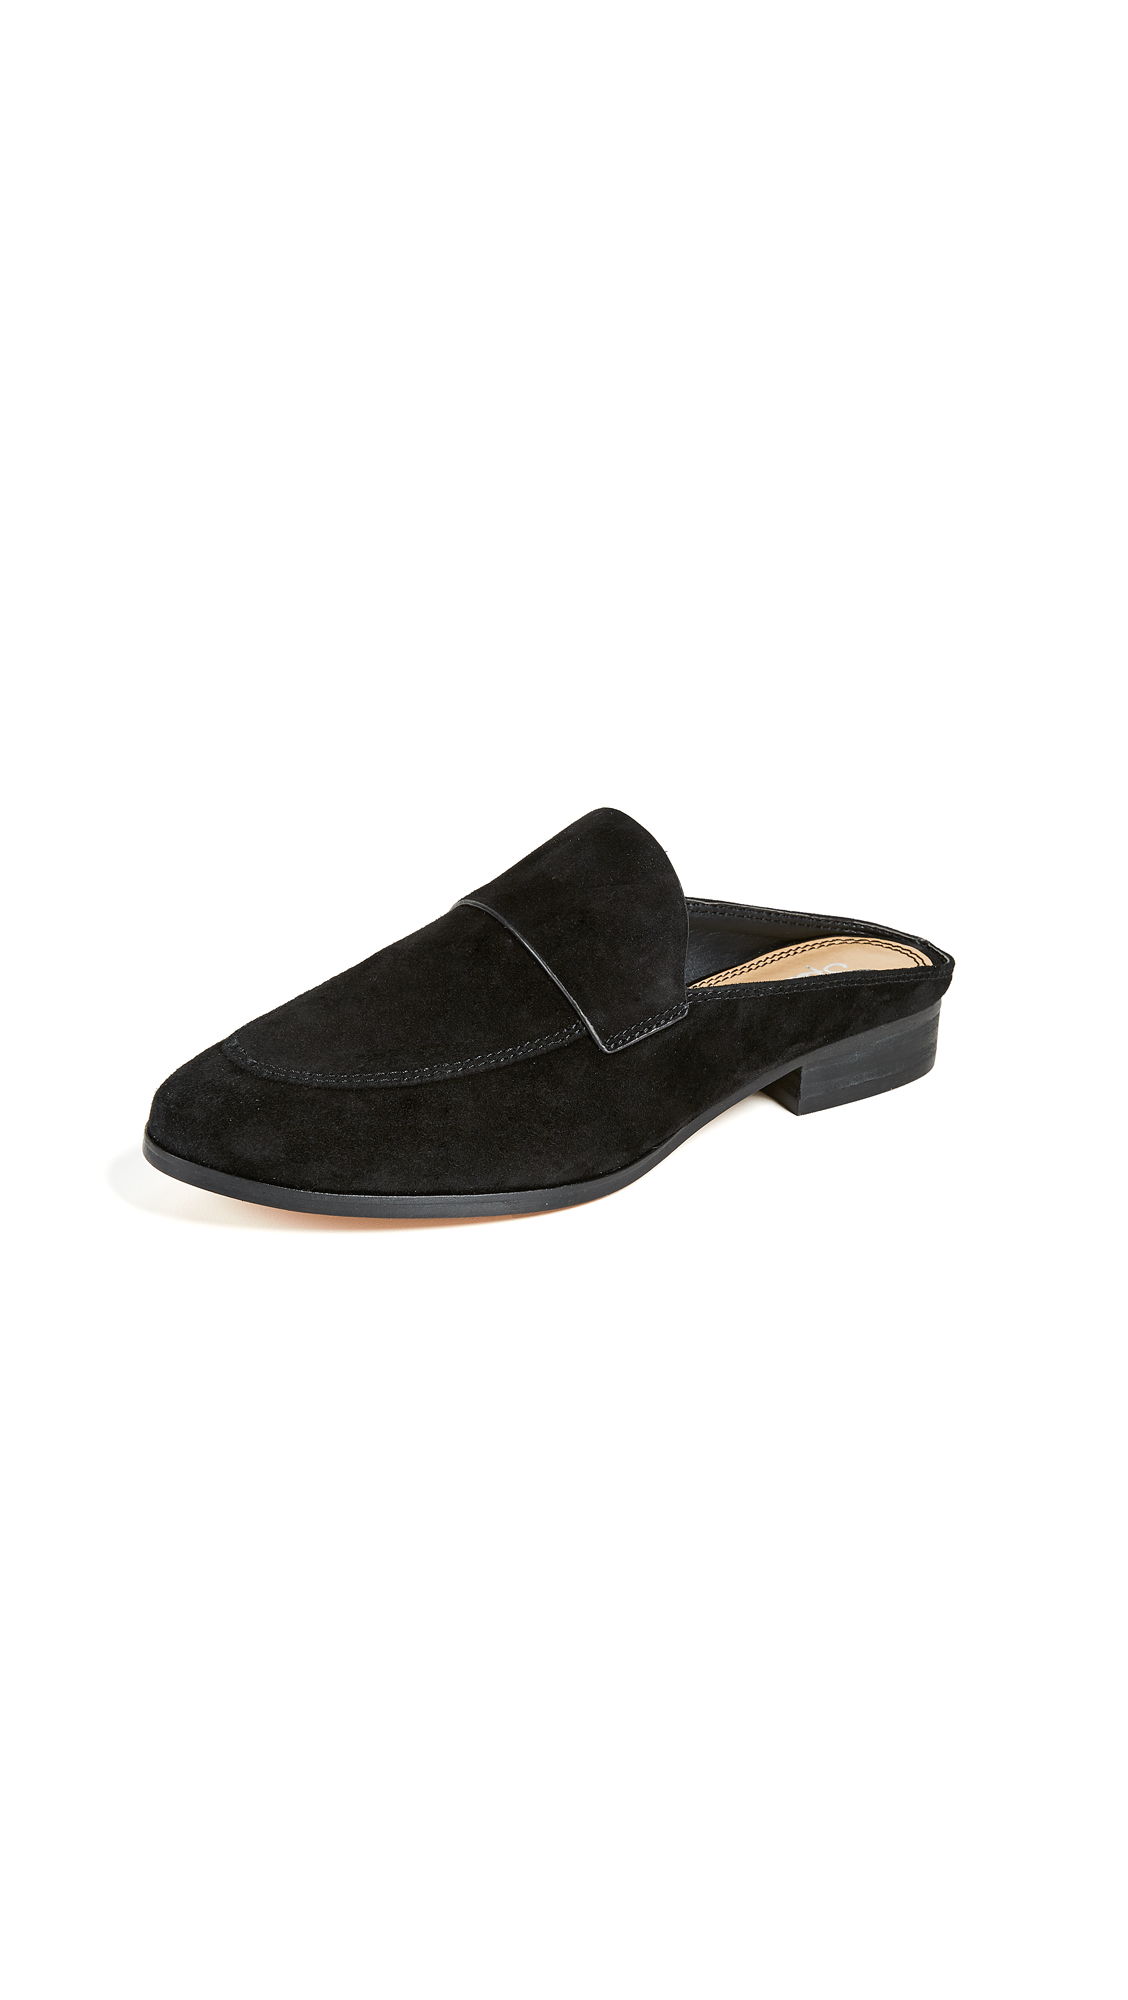 Splendid Nima Mules - Black